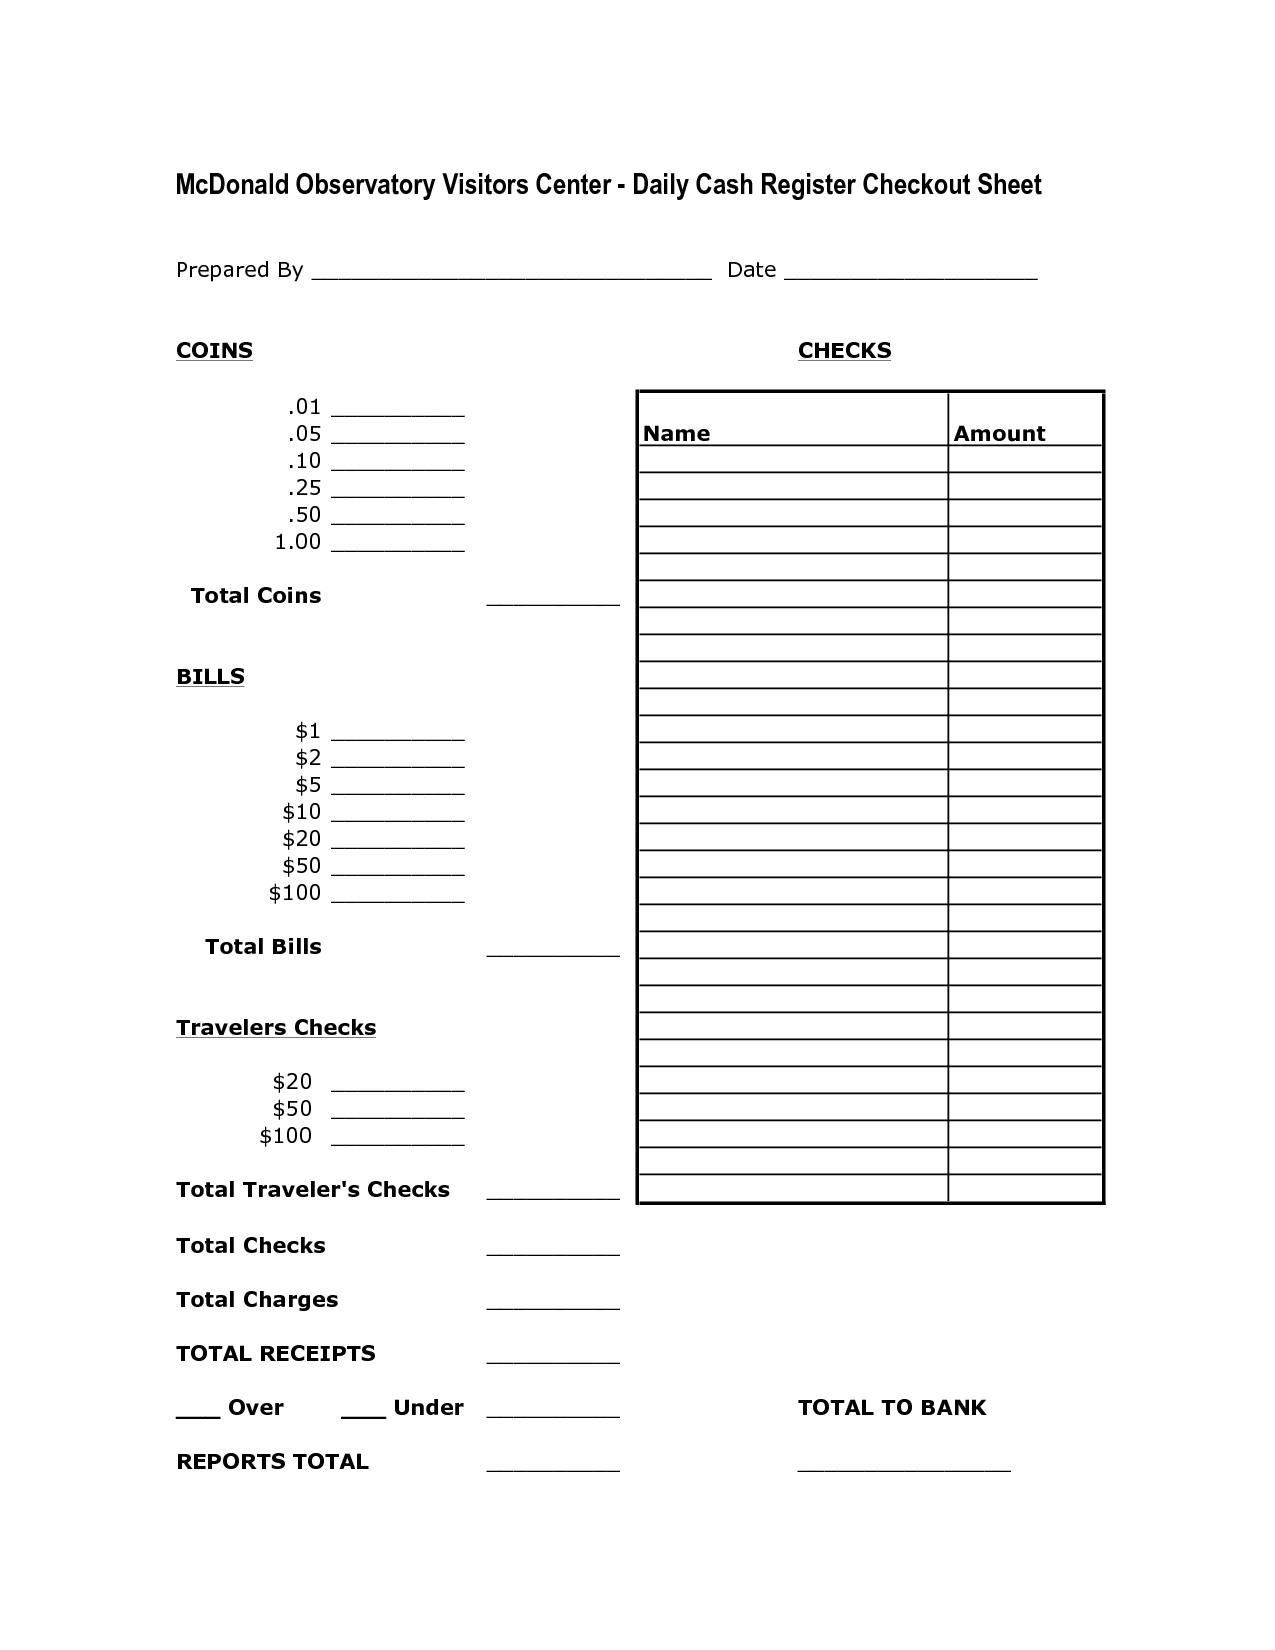 Daily Cash Register Balance Sheet Template With Images